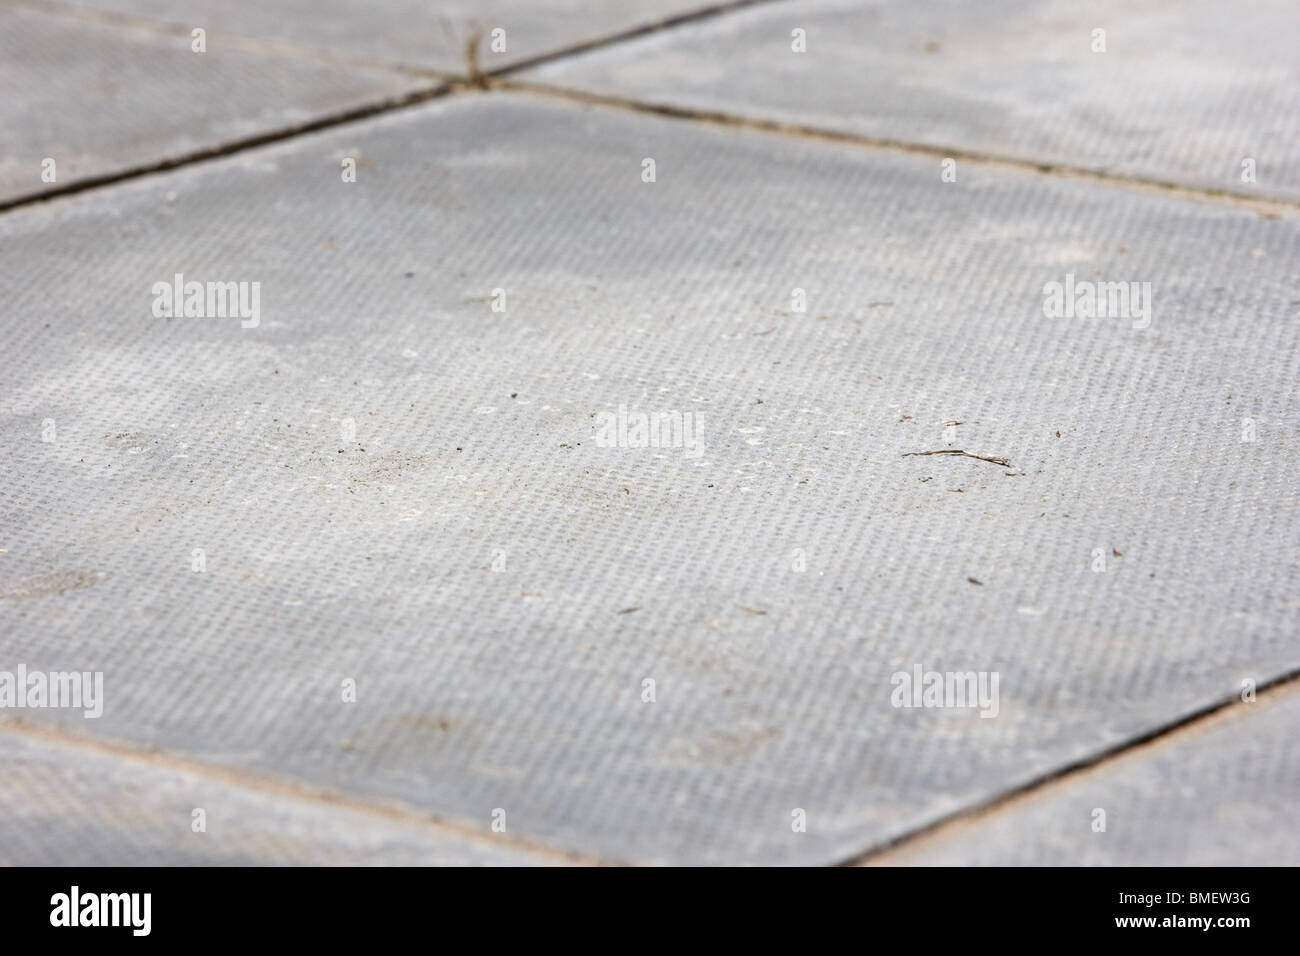 square concrete paving slab laid as a garden patio in the uk - Stock Image